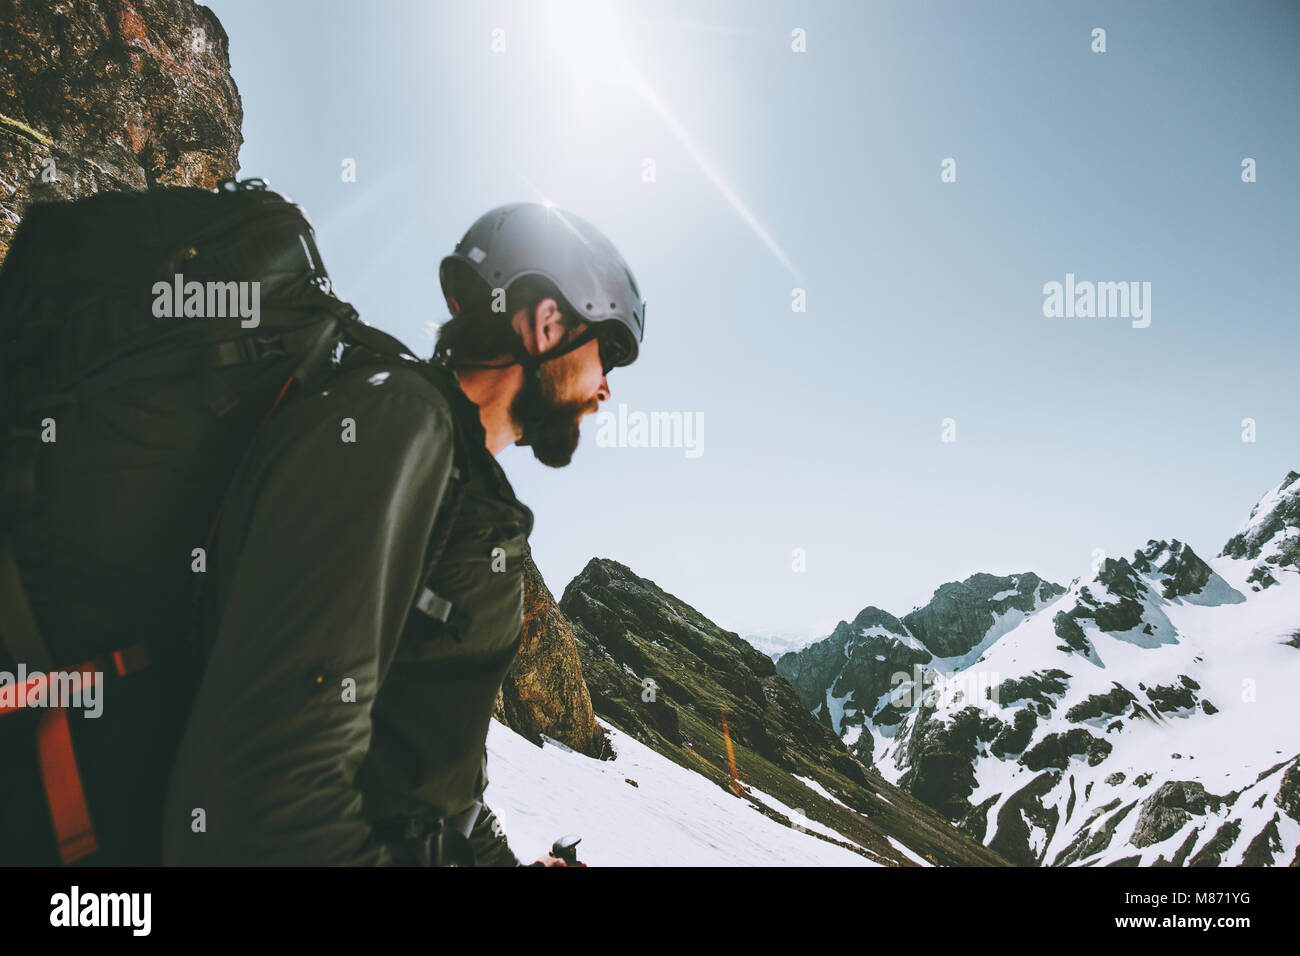 Man adventurer climbing on mountain top Travel adventure lifestyle concept outdoor active extreme vacations - Stock Image